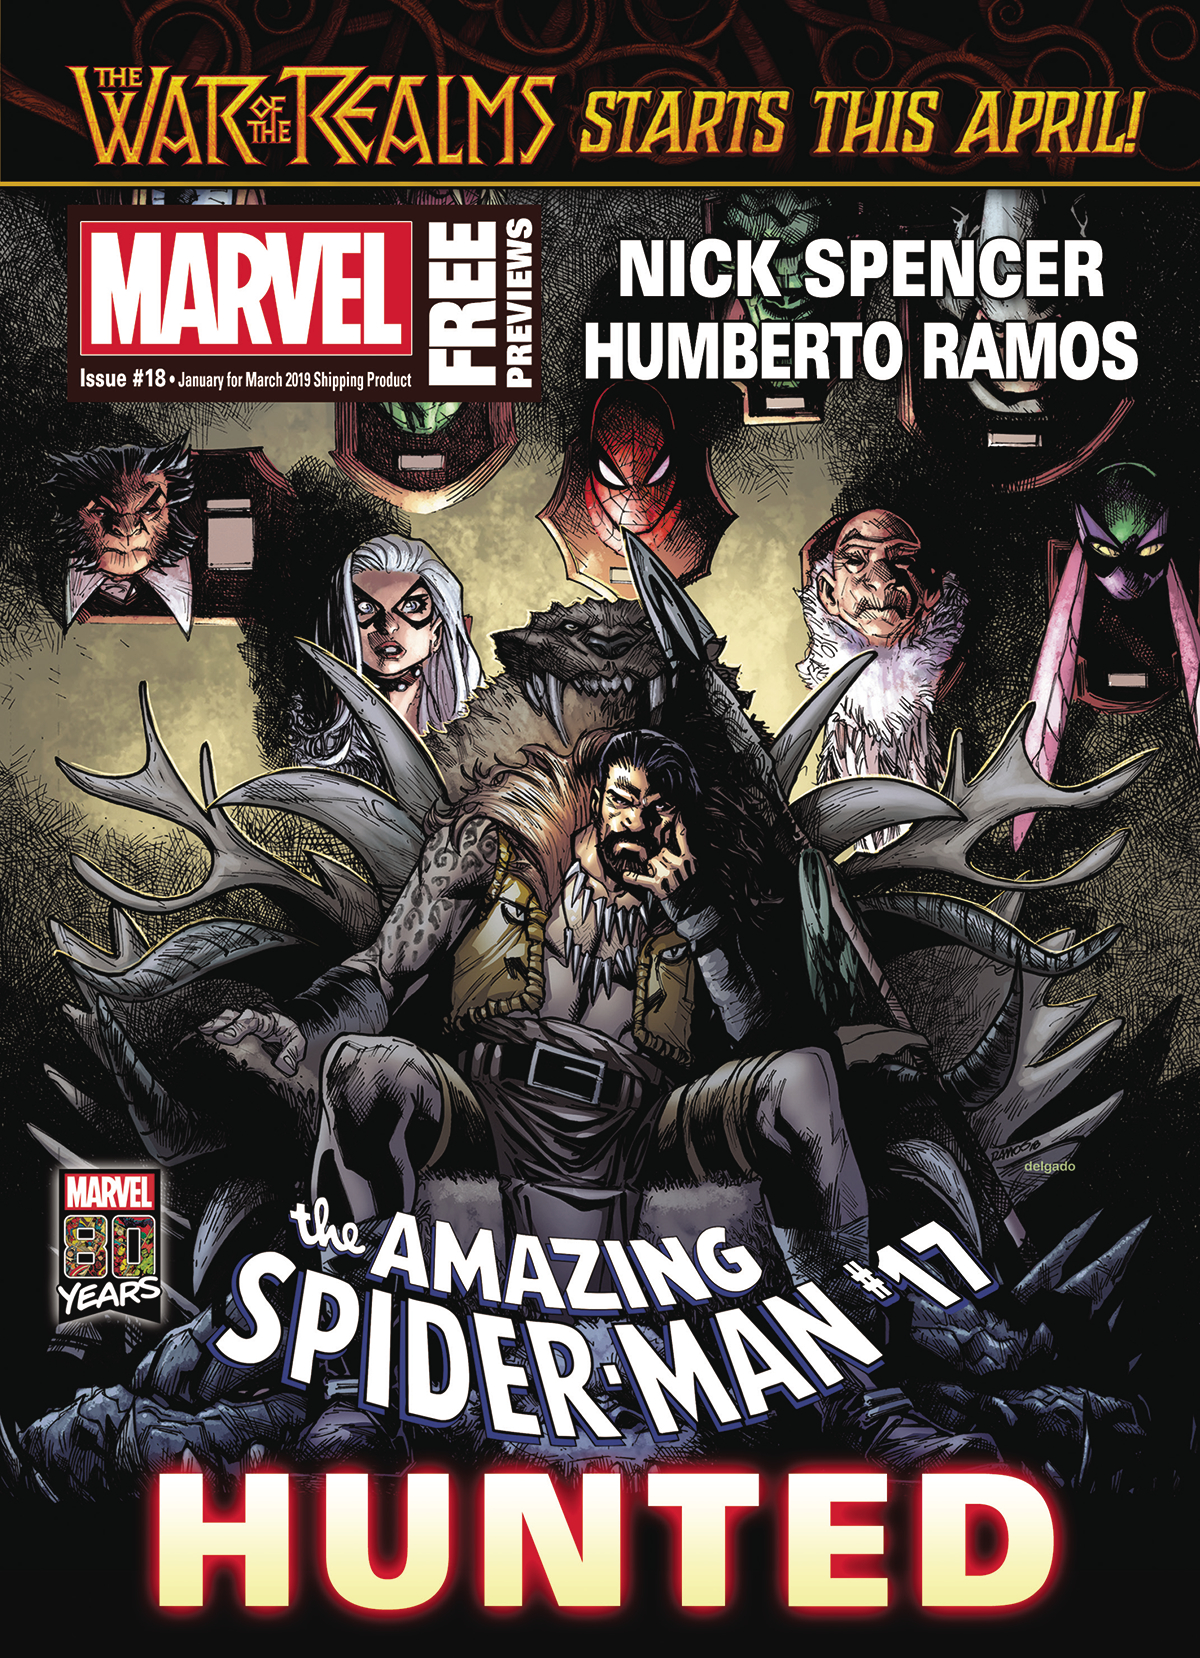 MARVEL PREVIEWS VOL 04 #18 JANUARY 2019 EXTRAS